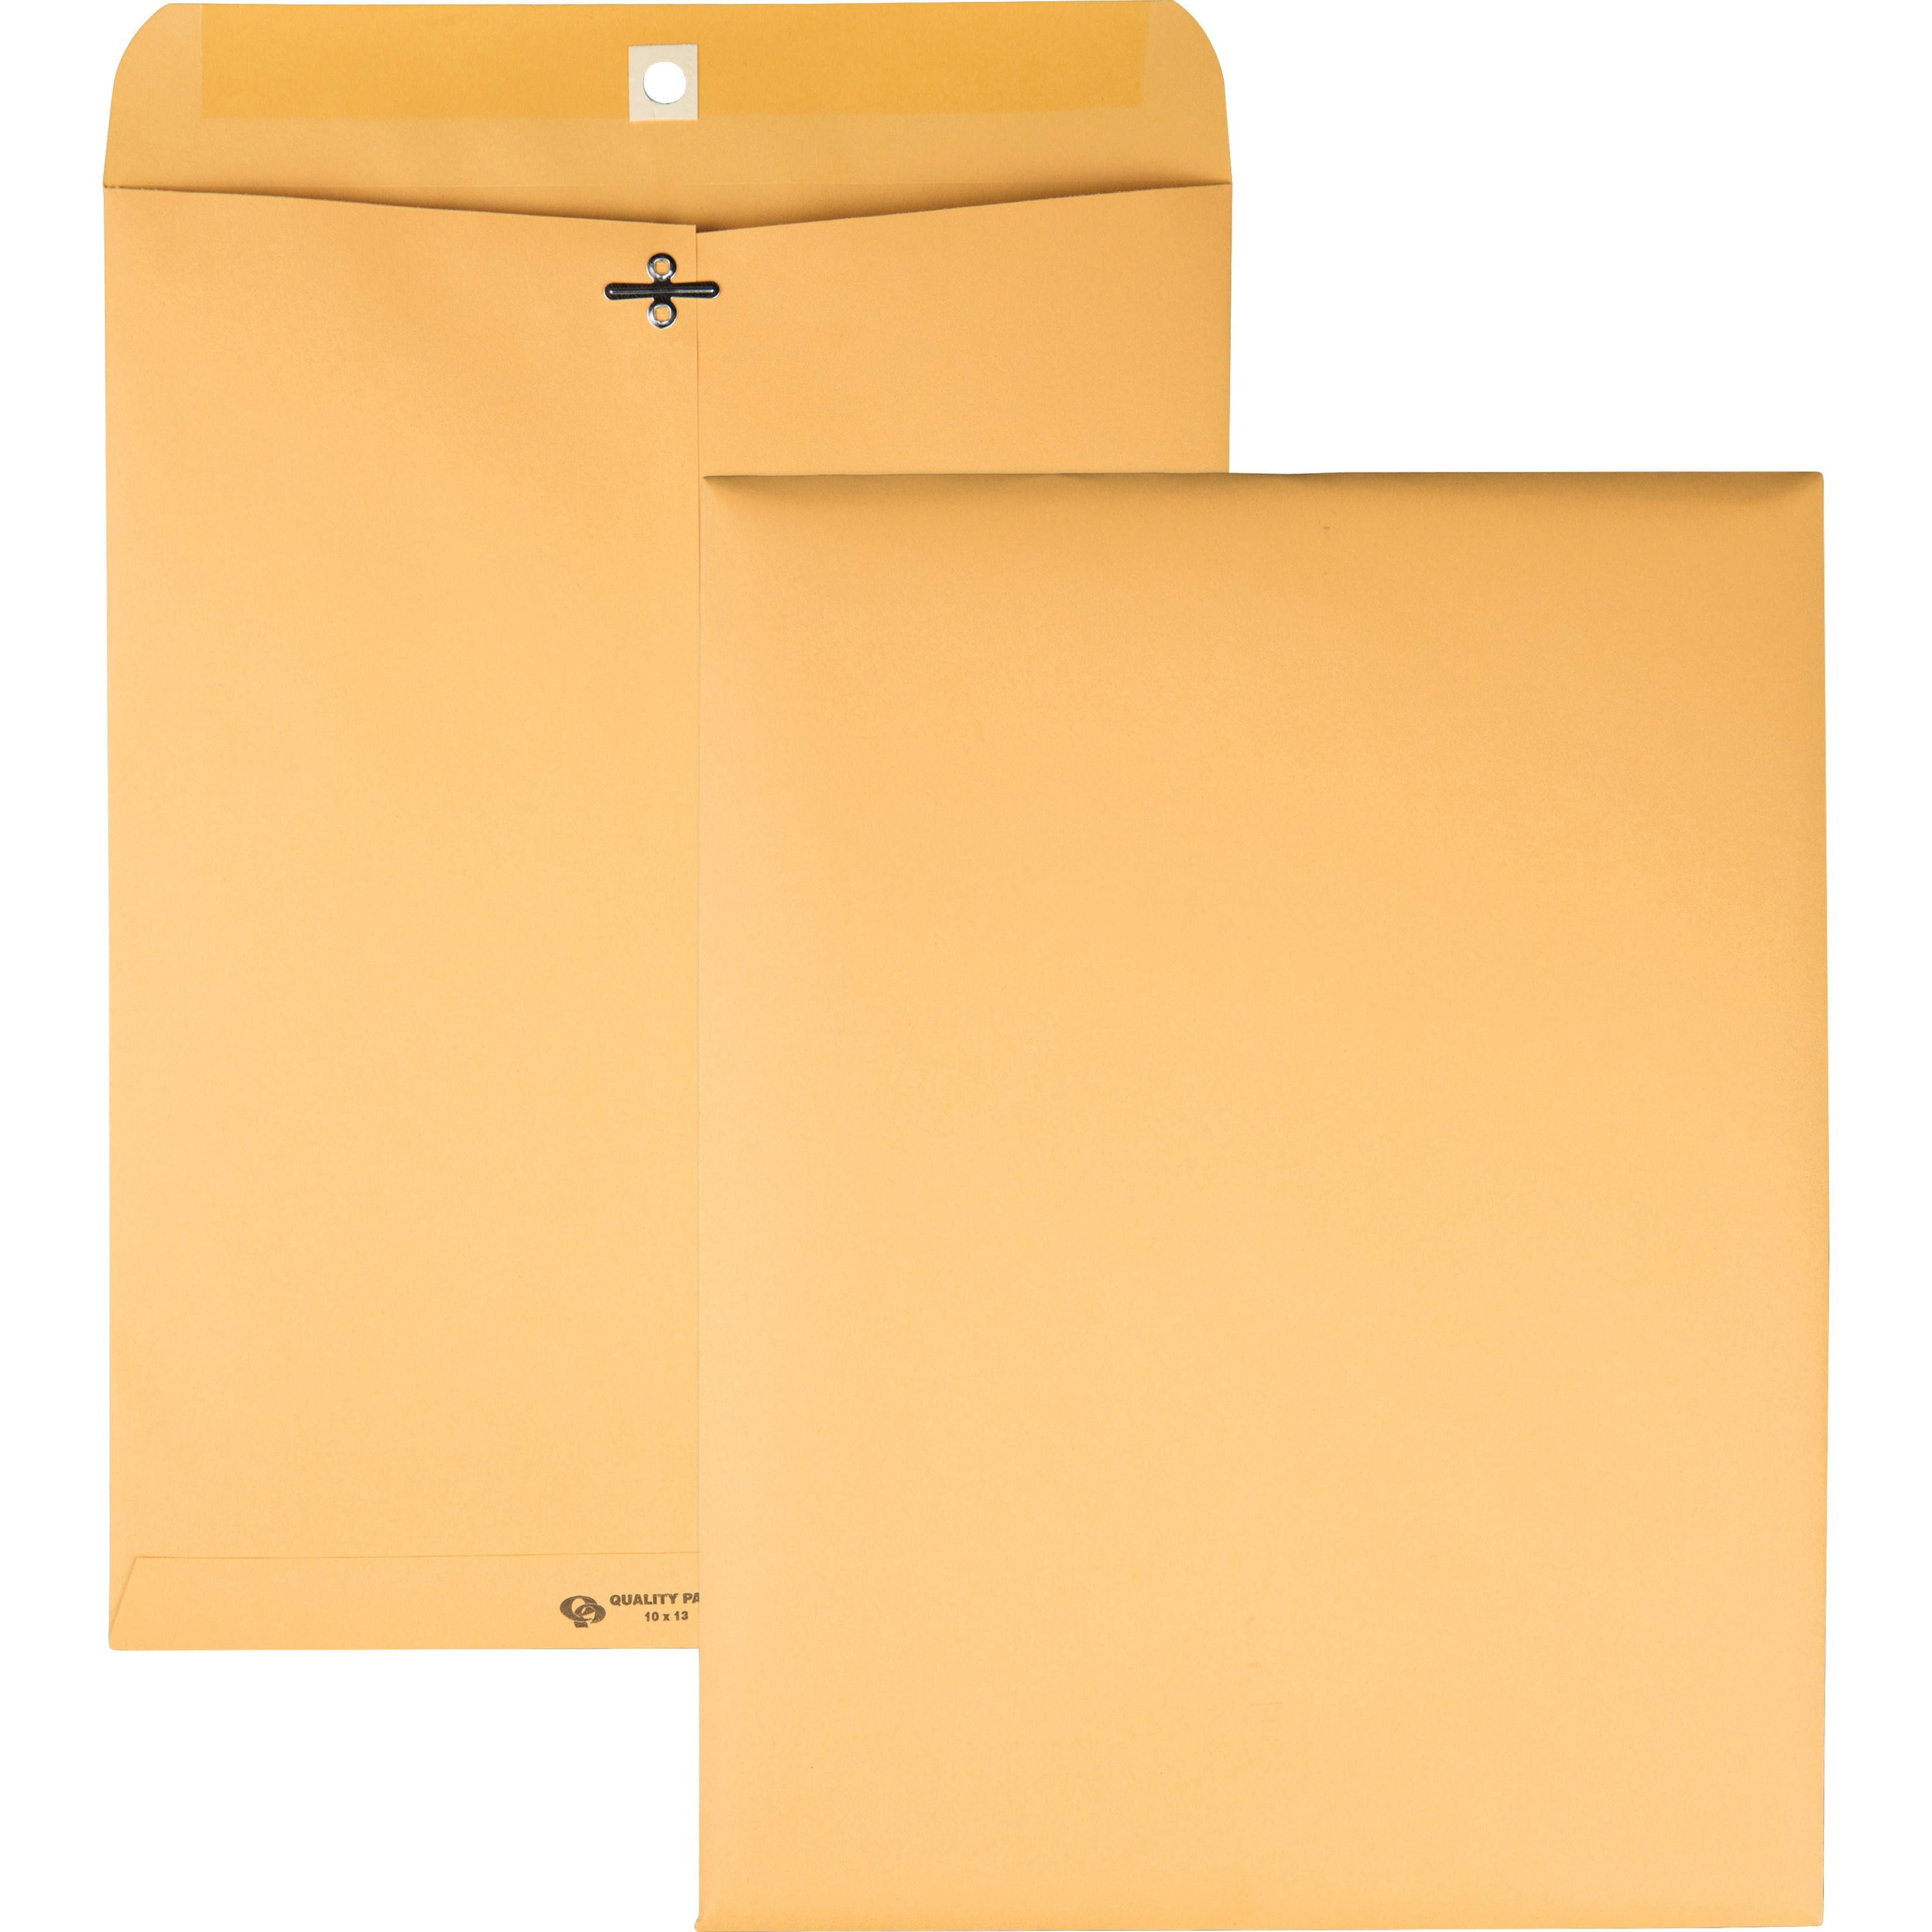 Clasp Envelope, 10 x 13, 32lb, Light Brown, 100/Box